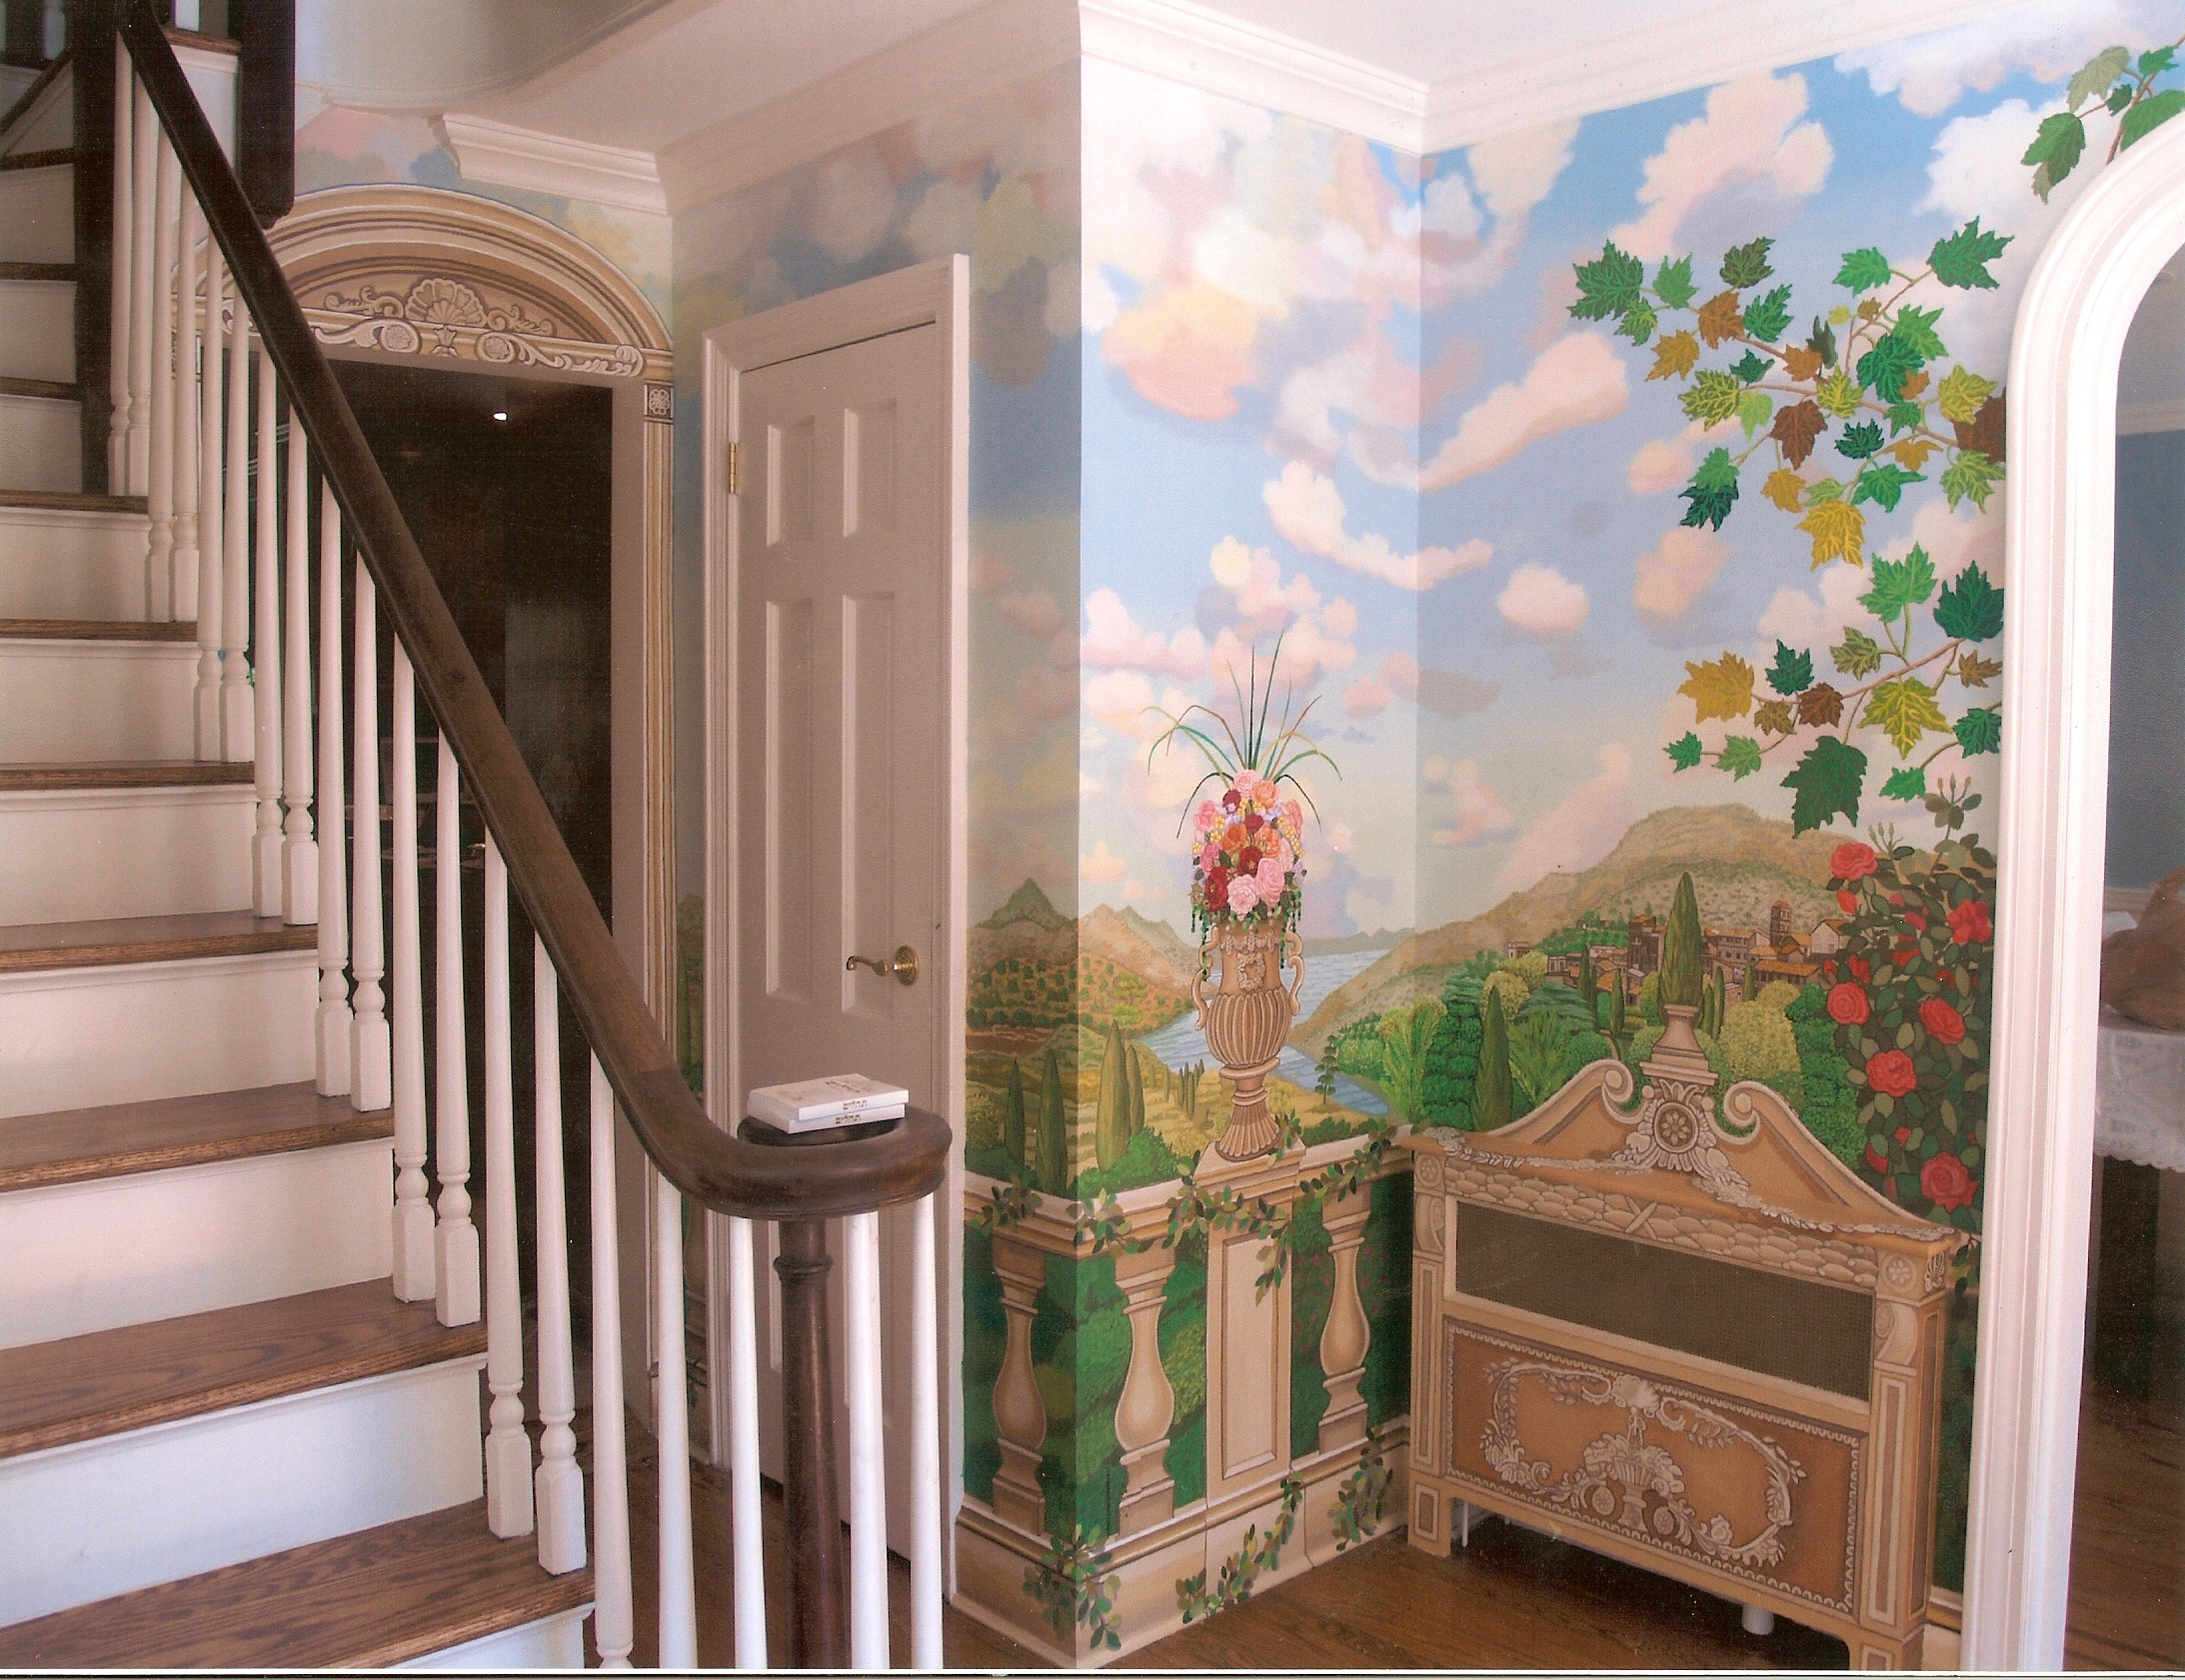 Bonnie siracusa murals fine art back wall of tuscany garden mural for hallway great neck ny amipublicfo Image collections